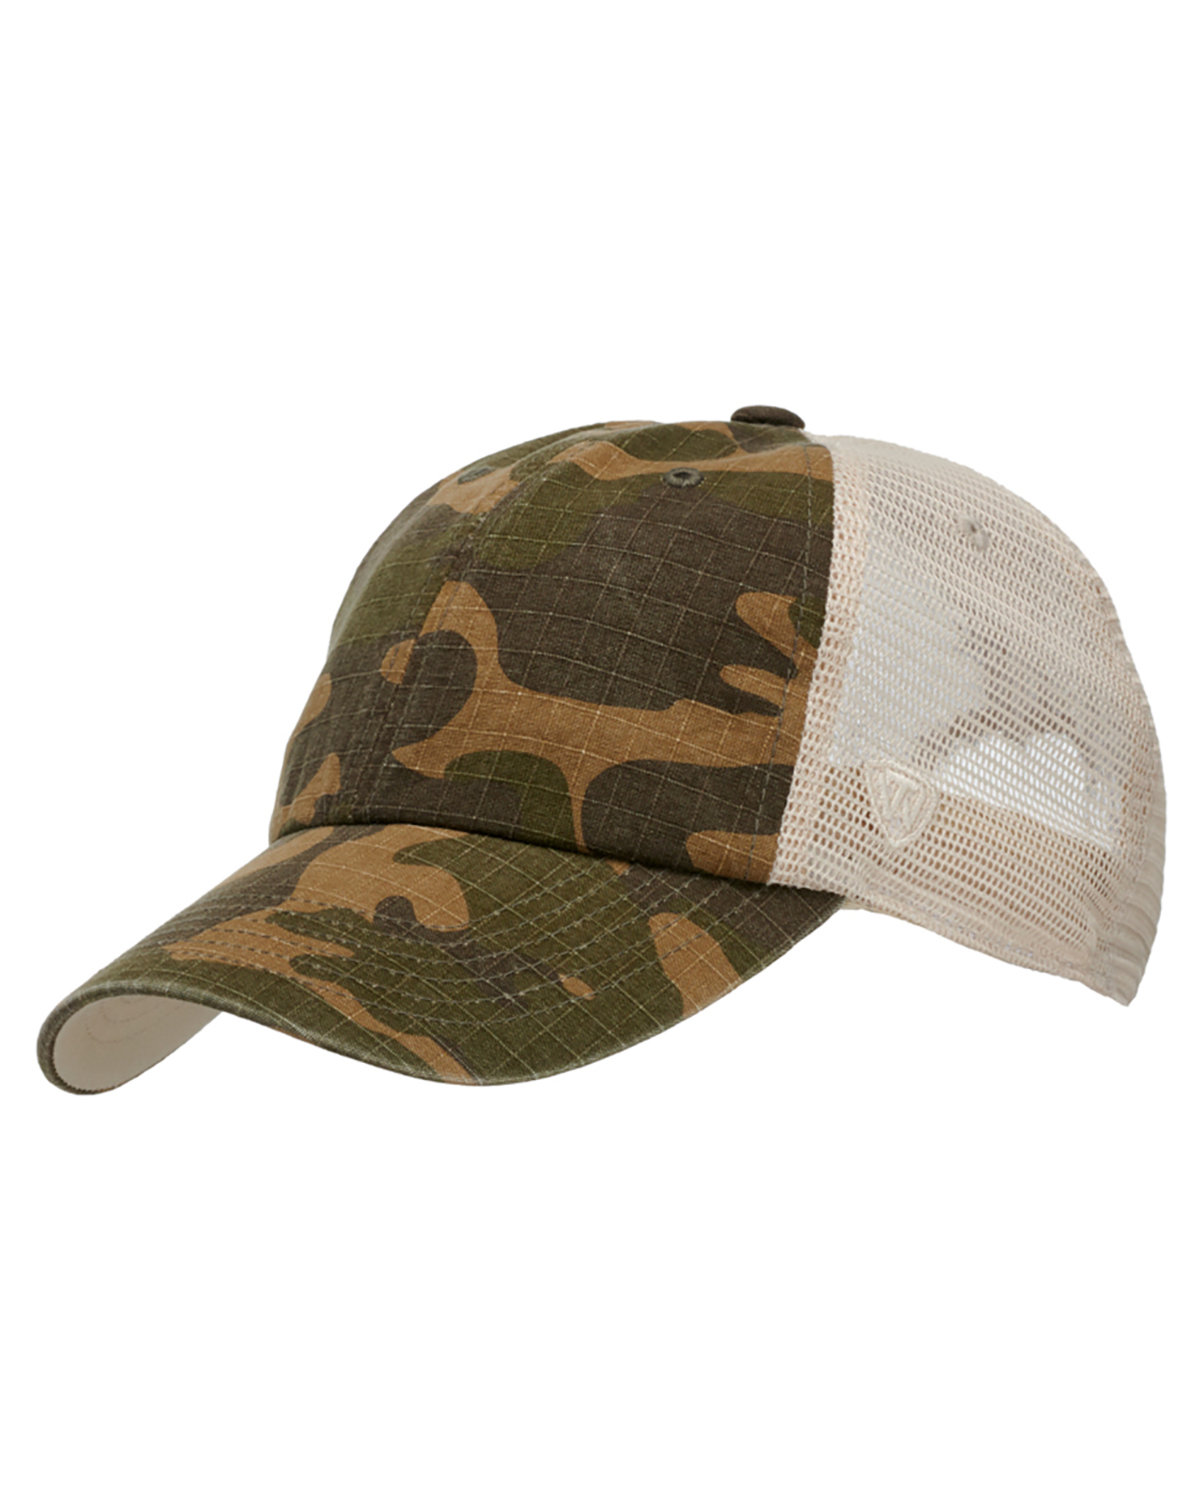 Top Of The World Riptide Ripstop Trucker Hat CAMO